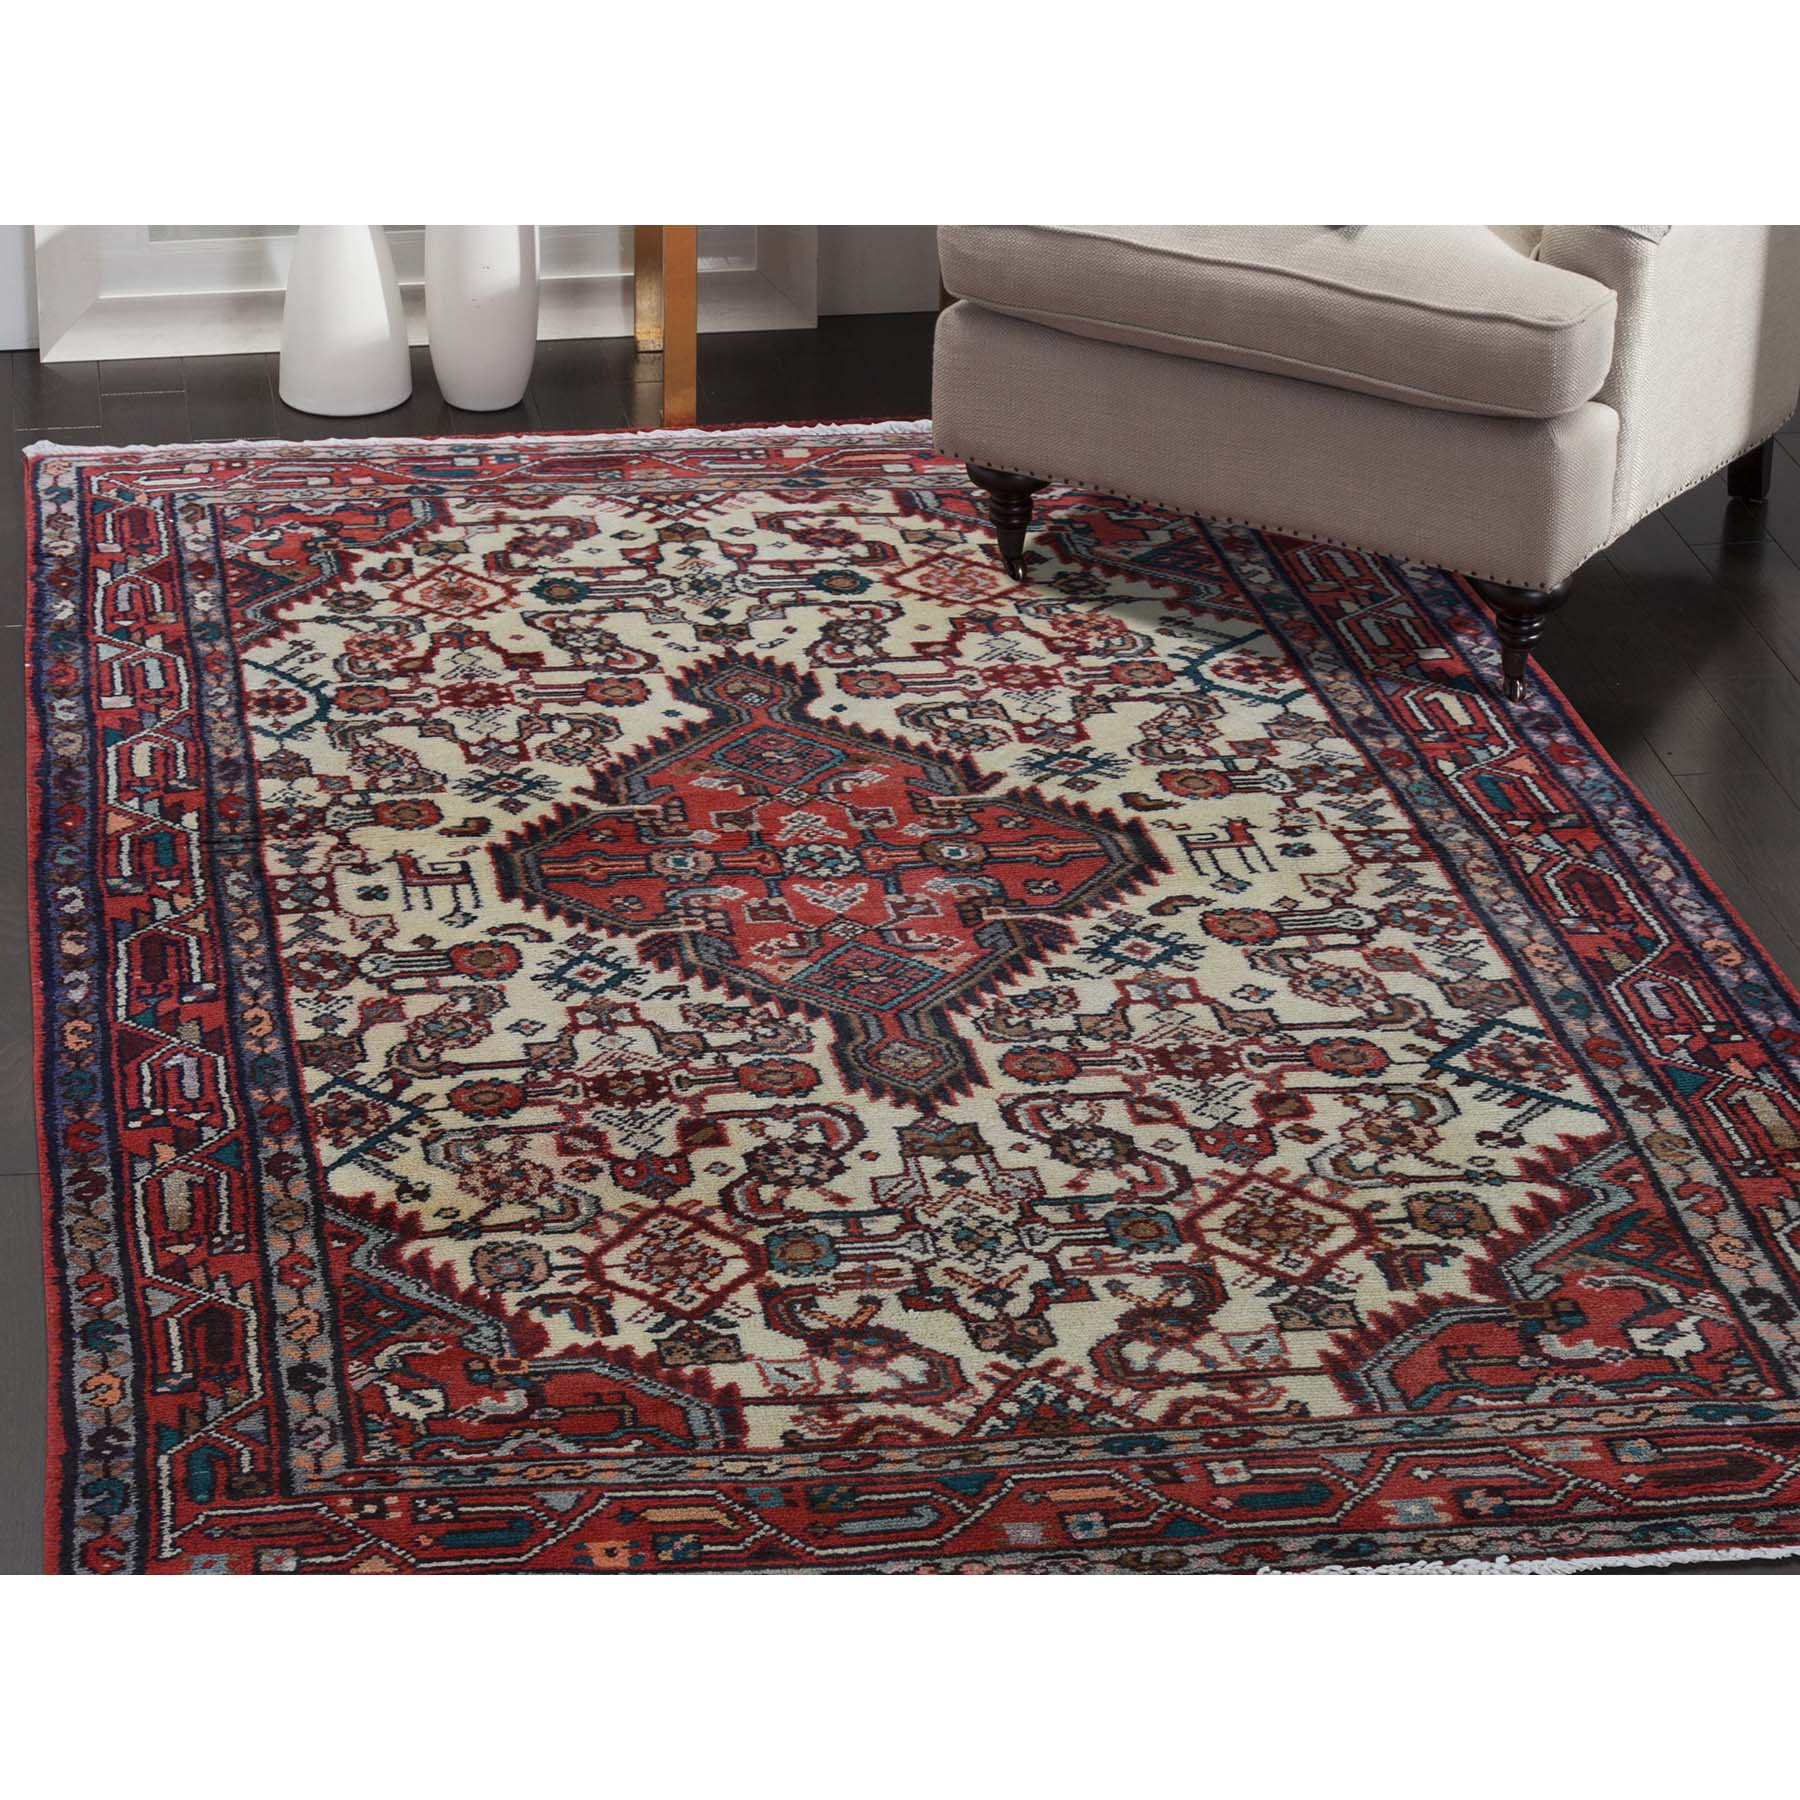 3-4 x5- Pure Wool Semi Antique Persian Hamadan Mint Condition Hand-Knotted Oriental Rug